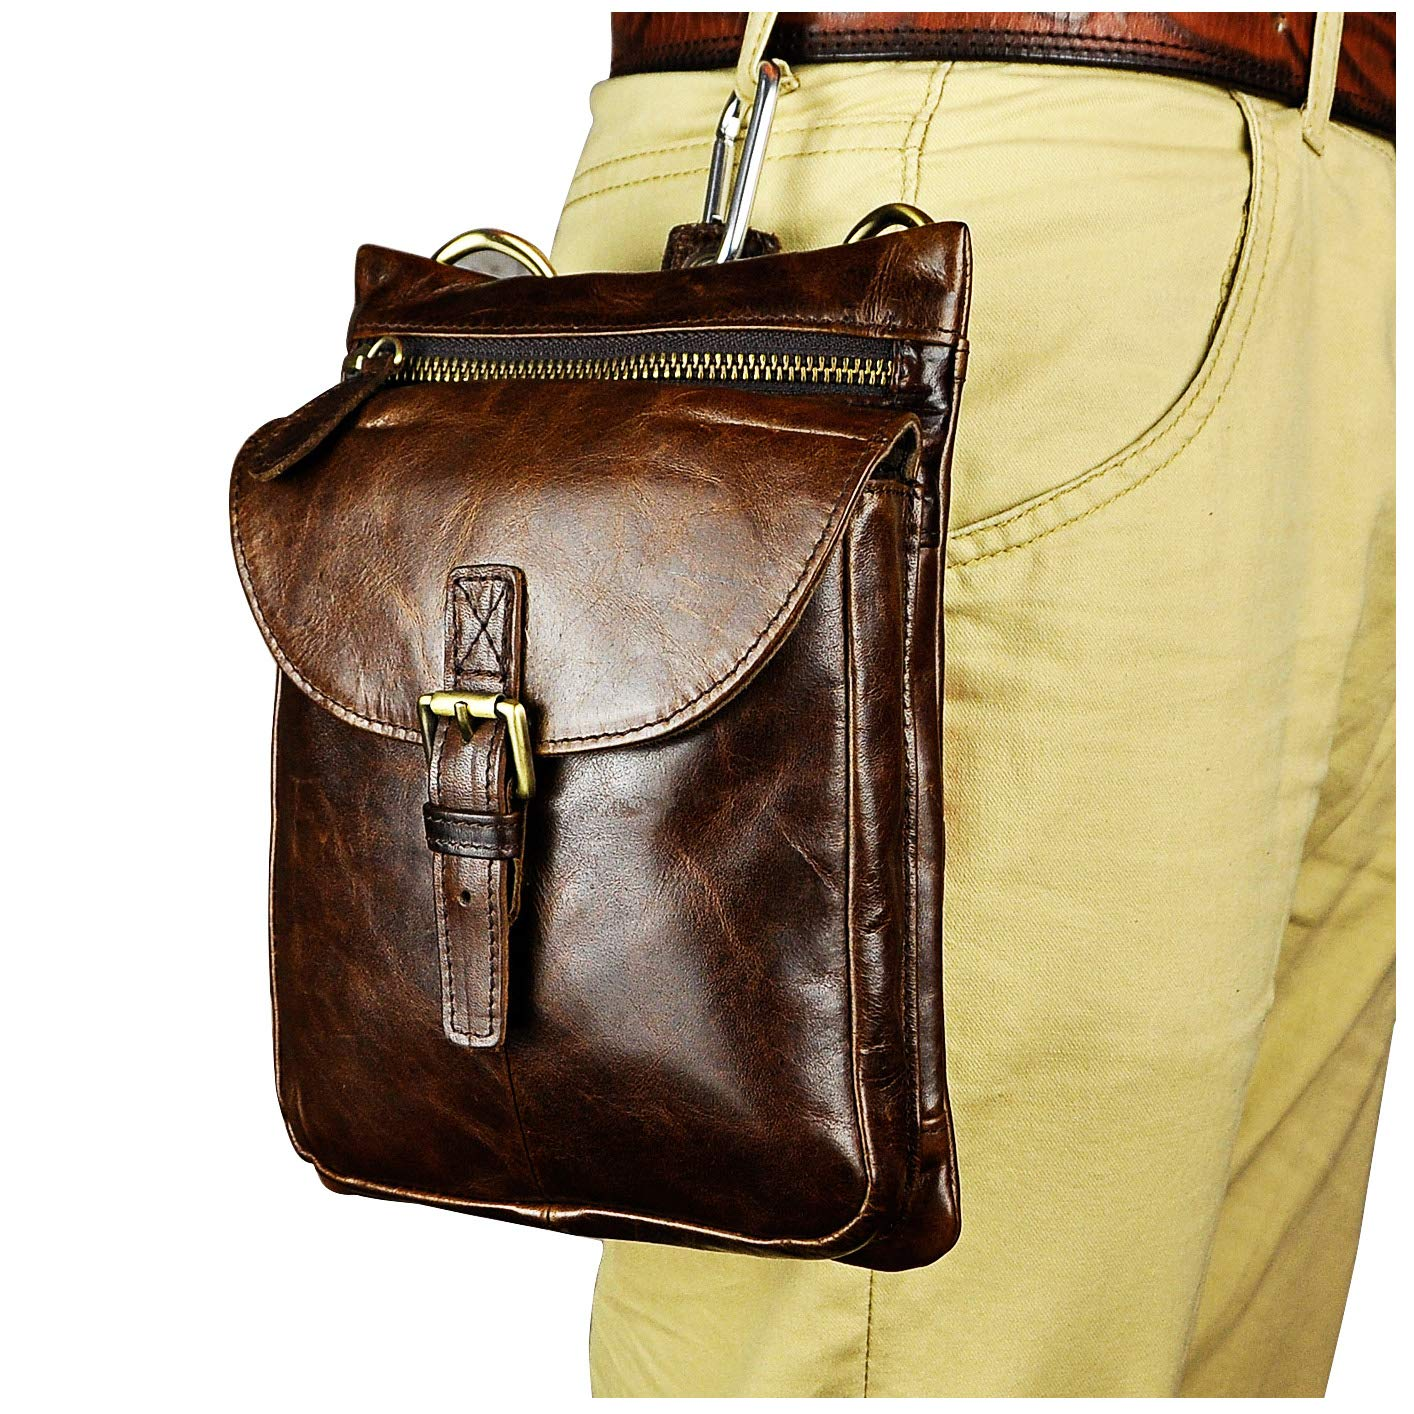 Leaokuu Men Genuine Leather Small Hook Messenger Shoulder Satchel Fanny Belt Waist Bag Pack 6552 6552 B-Dark Brown 2